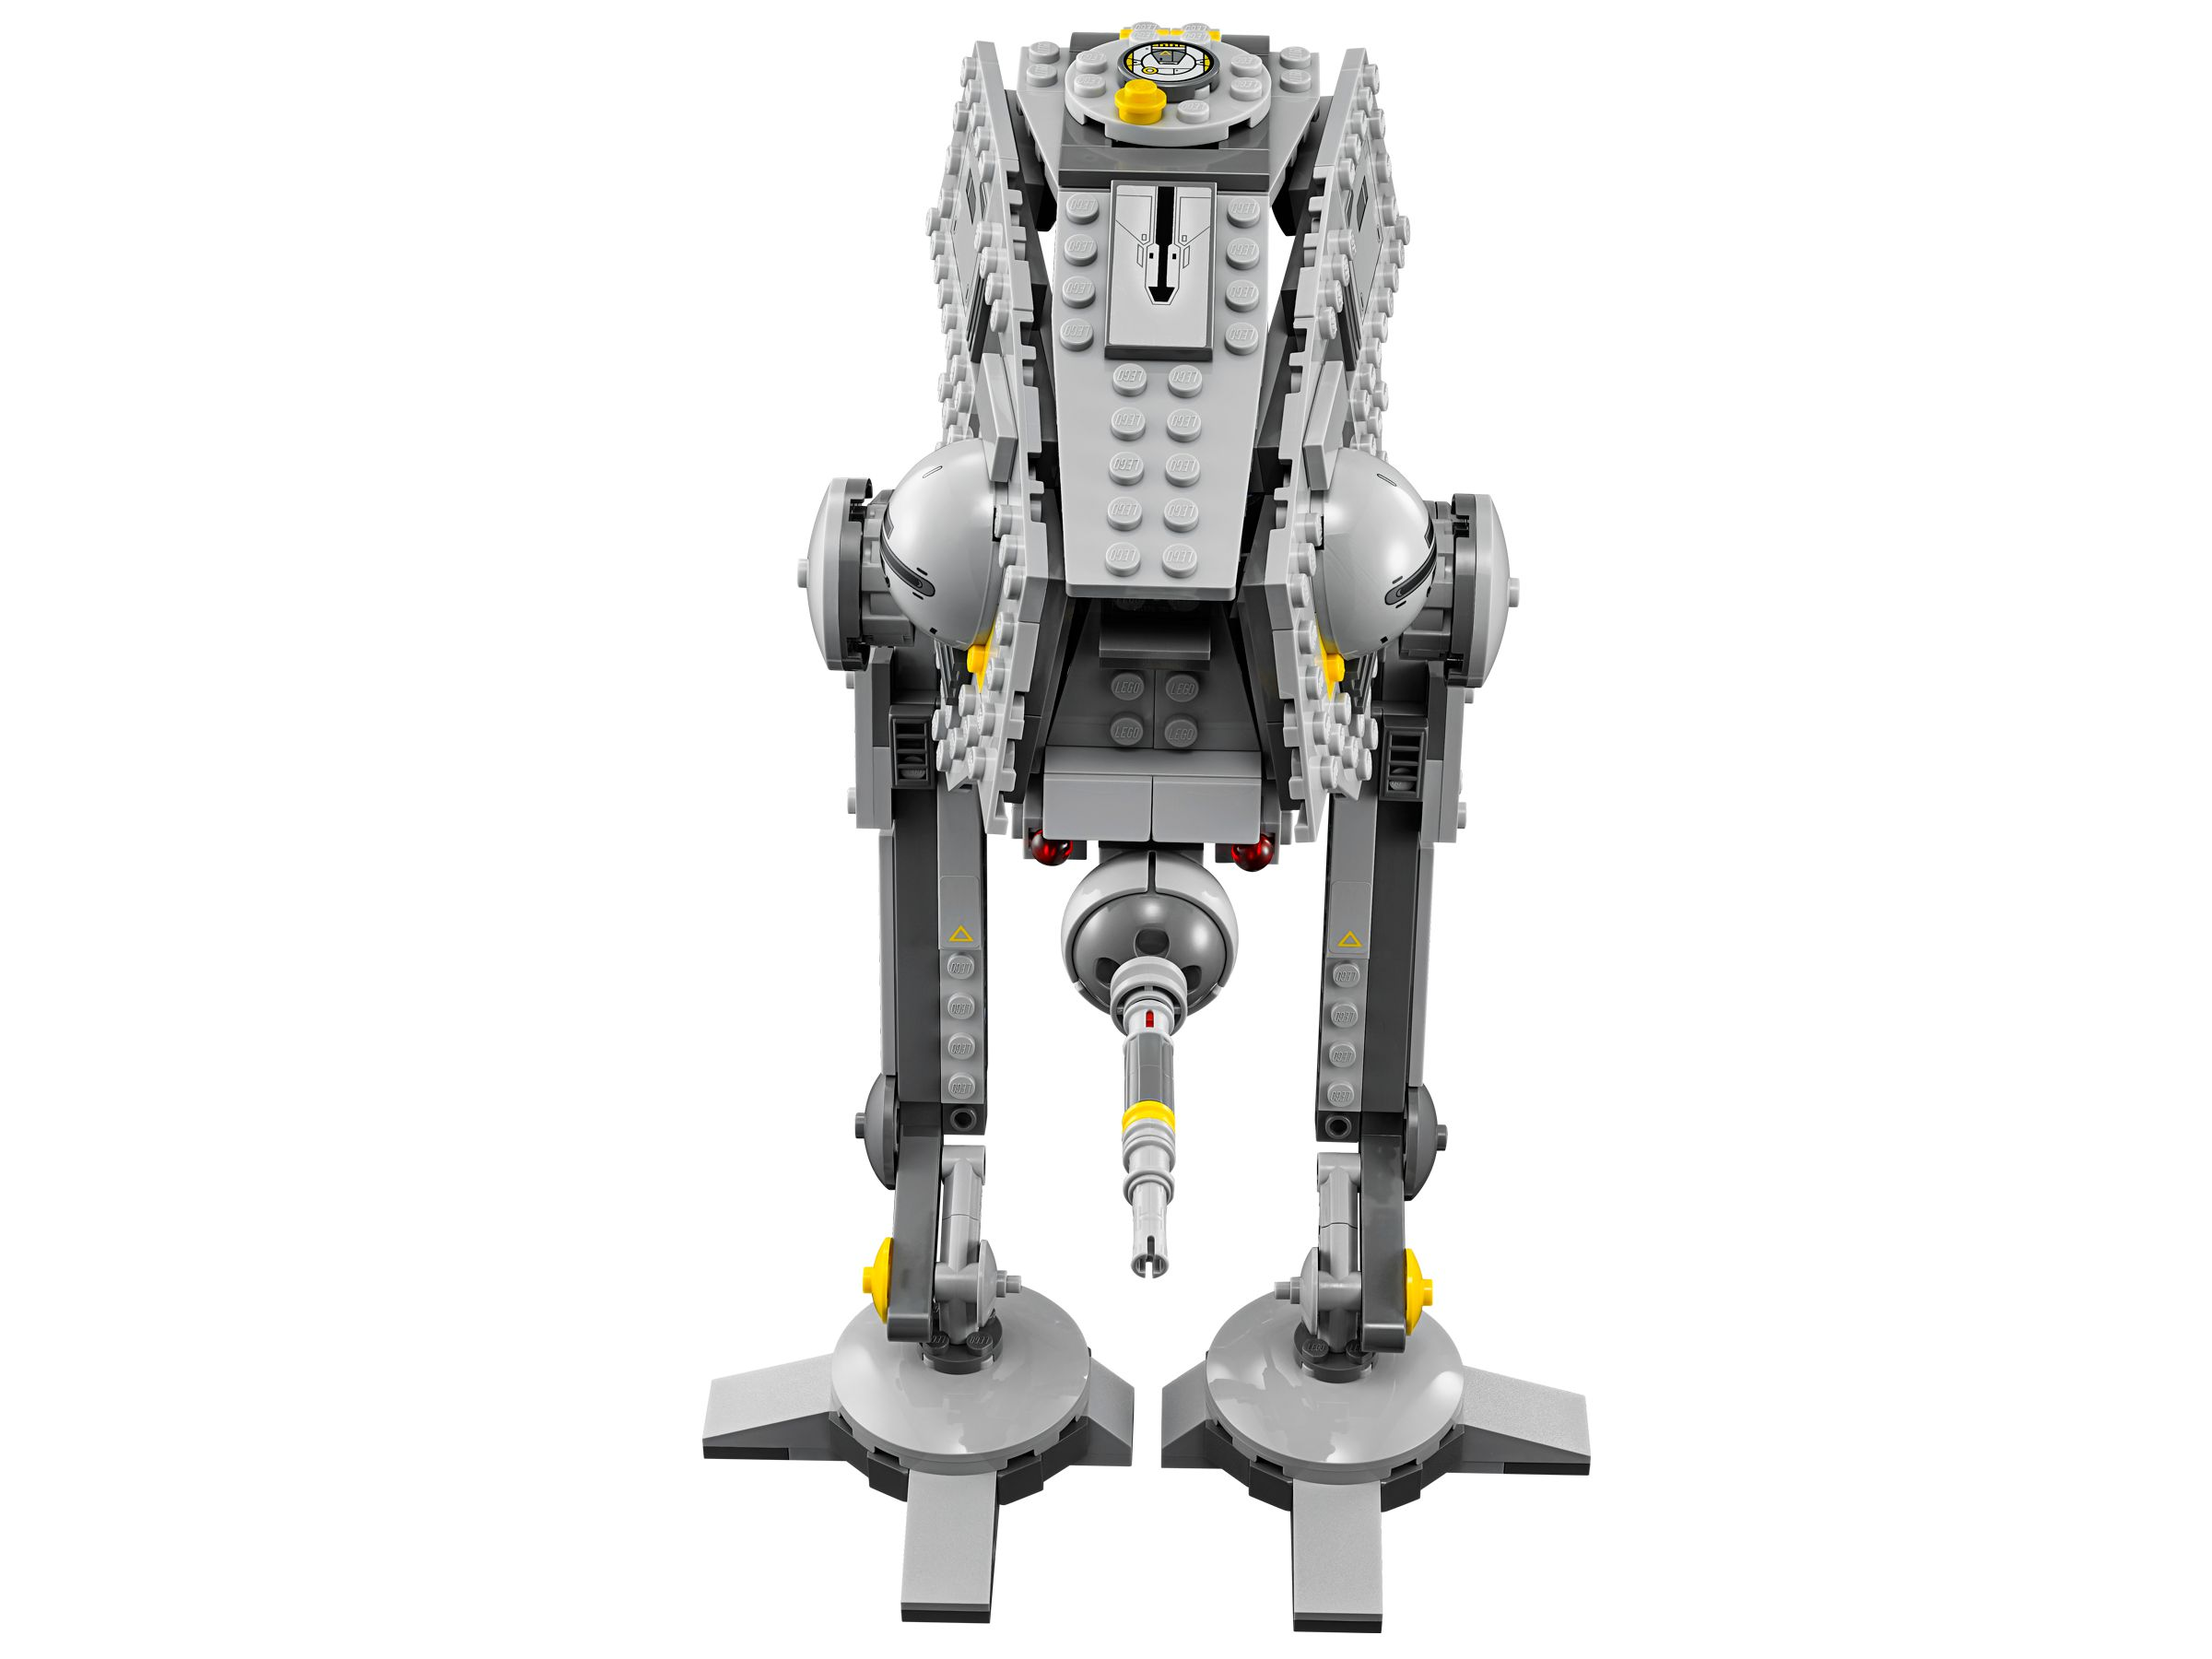 LEGO Star Wars 75083 AT-DP™ LEGO_75083_alt2.jpg